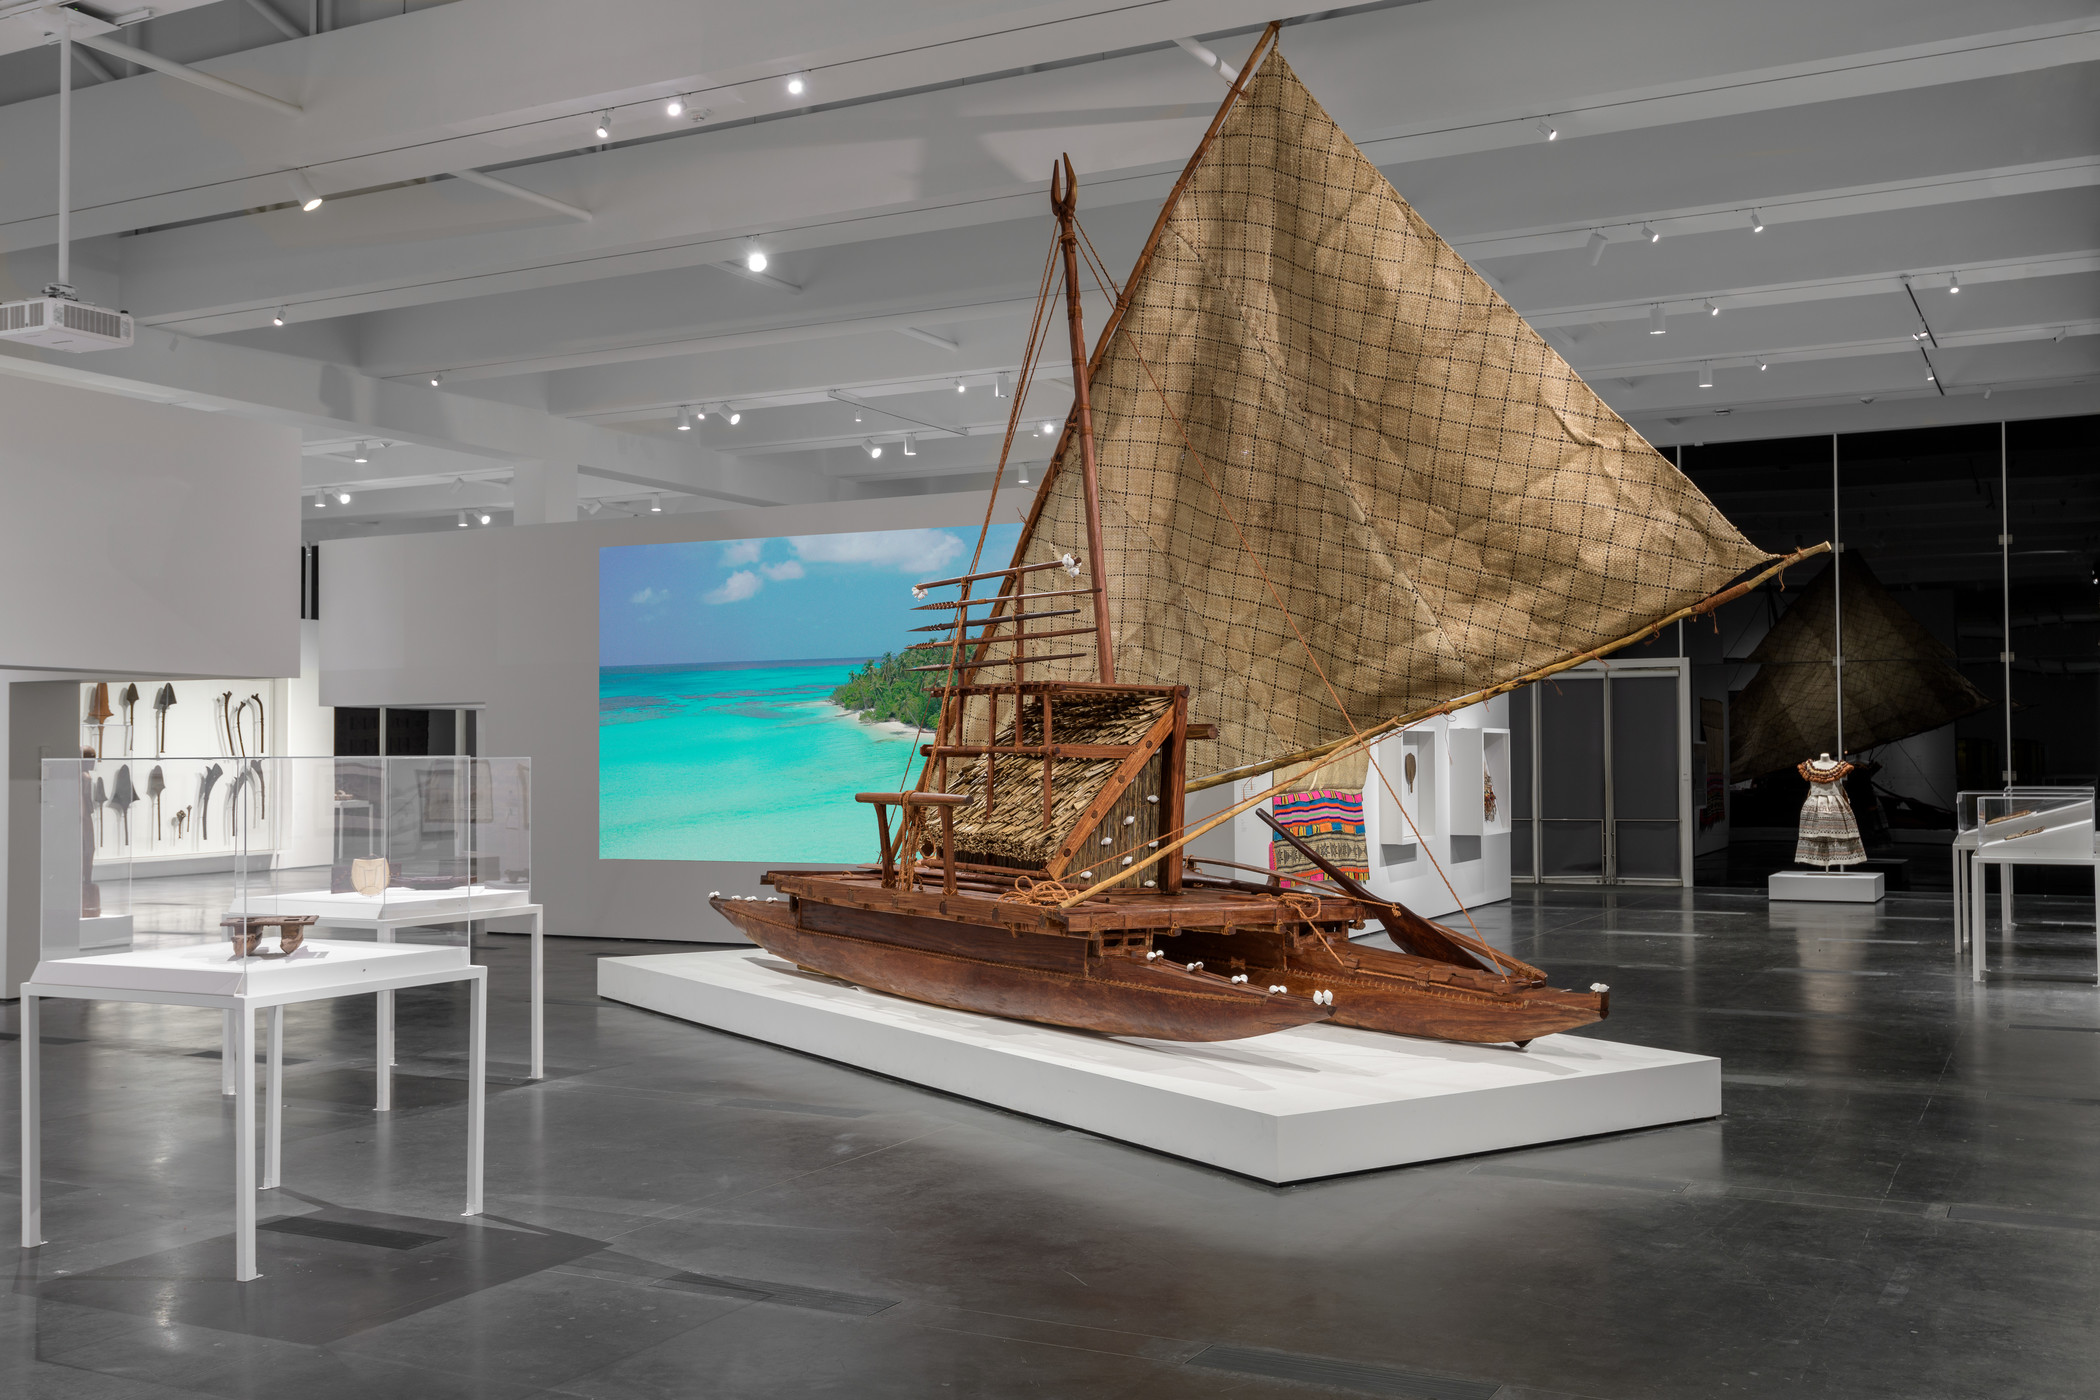 Installation photograph, Fiji: Art & Life in the Pacific, Los Angeles County Museum of Art, 2019–20, photo © Museum Associates/LACMA